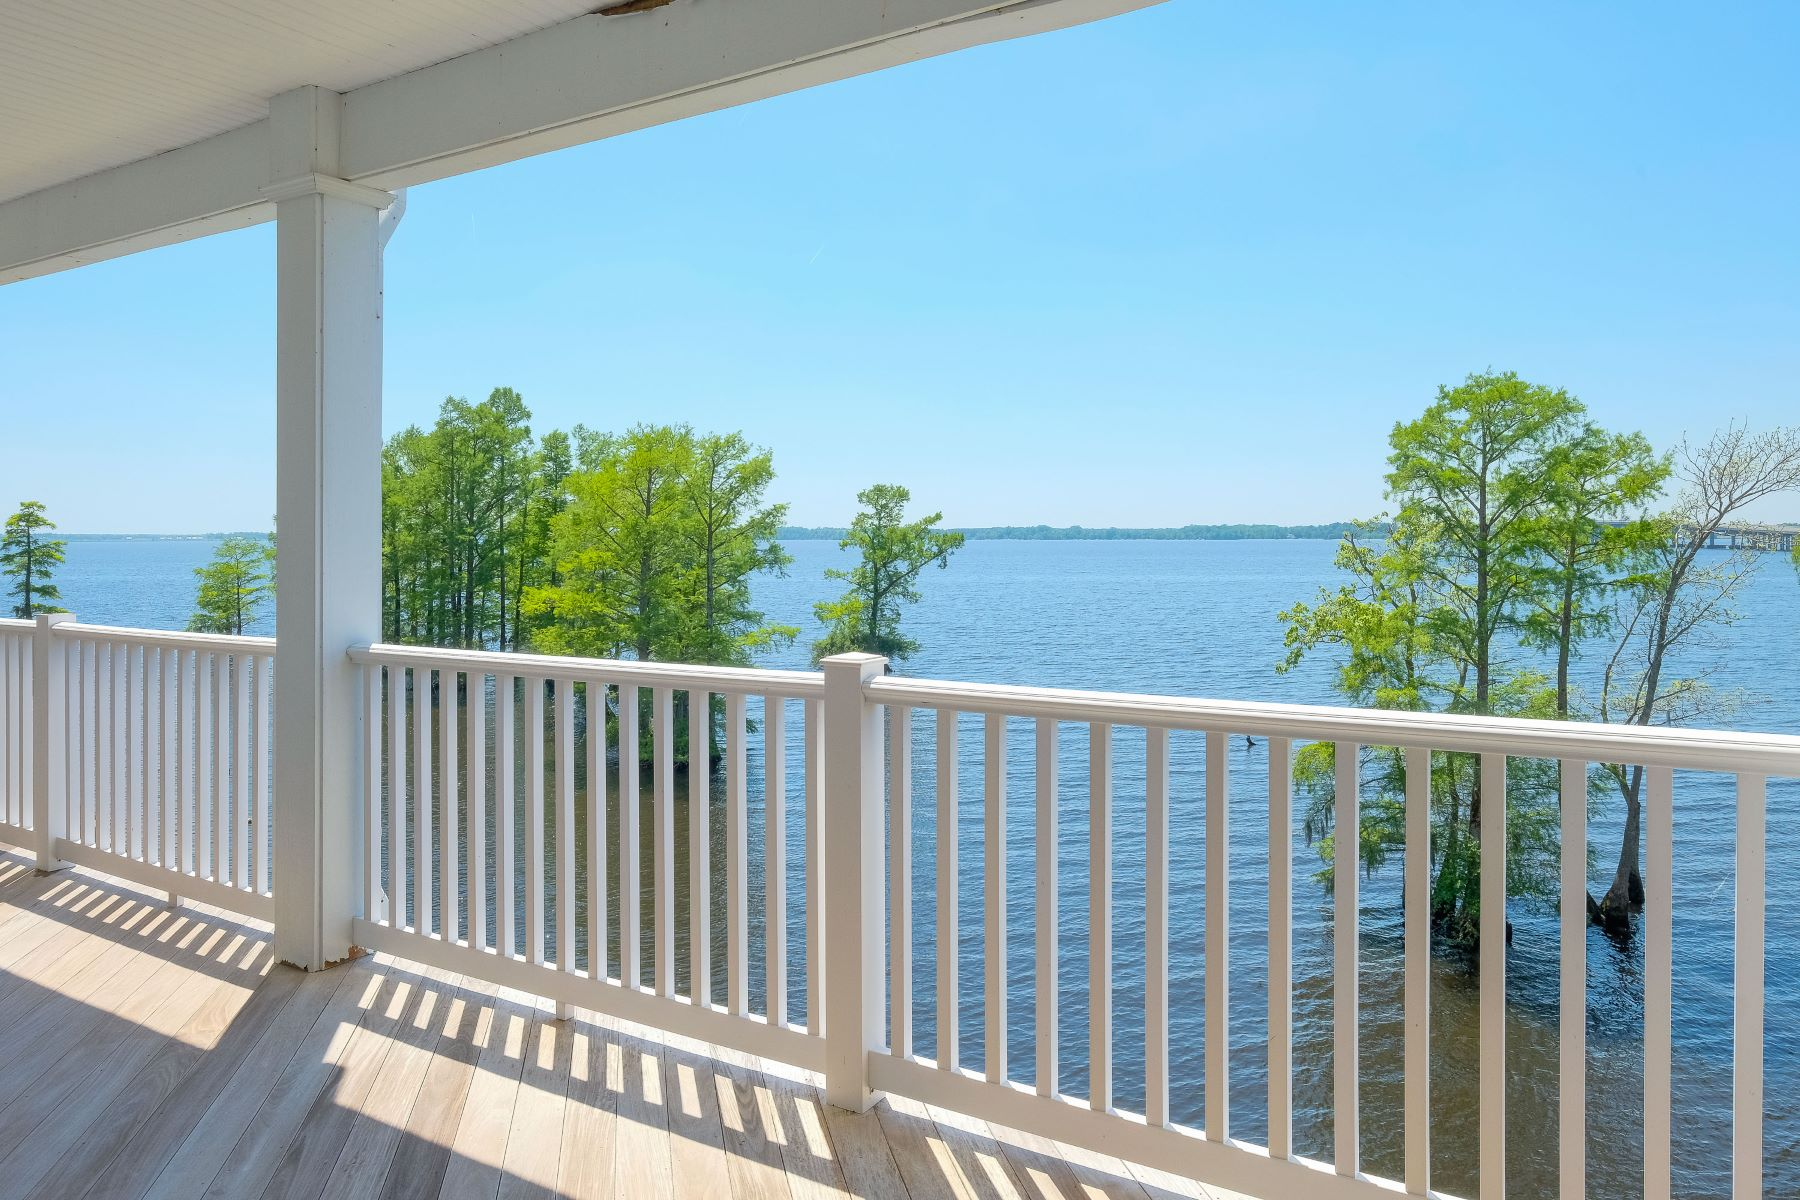 Condominiums for Sale at RIVERFRONT CONDO 412 D Captains Cove Edenton, North Carolina 27932 United States